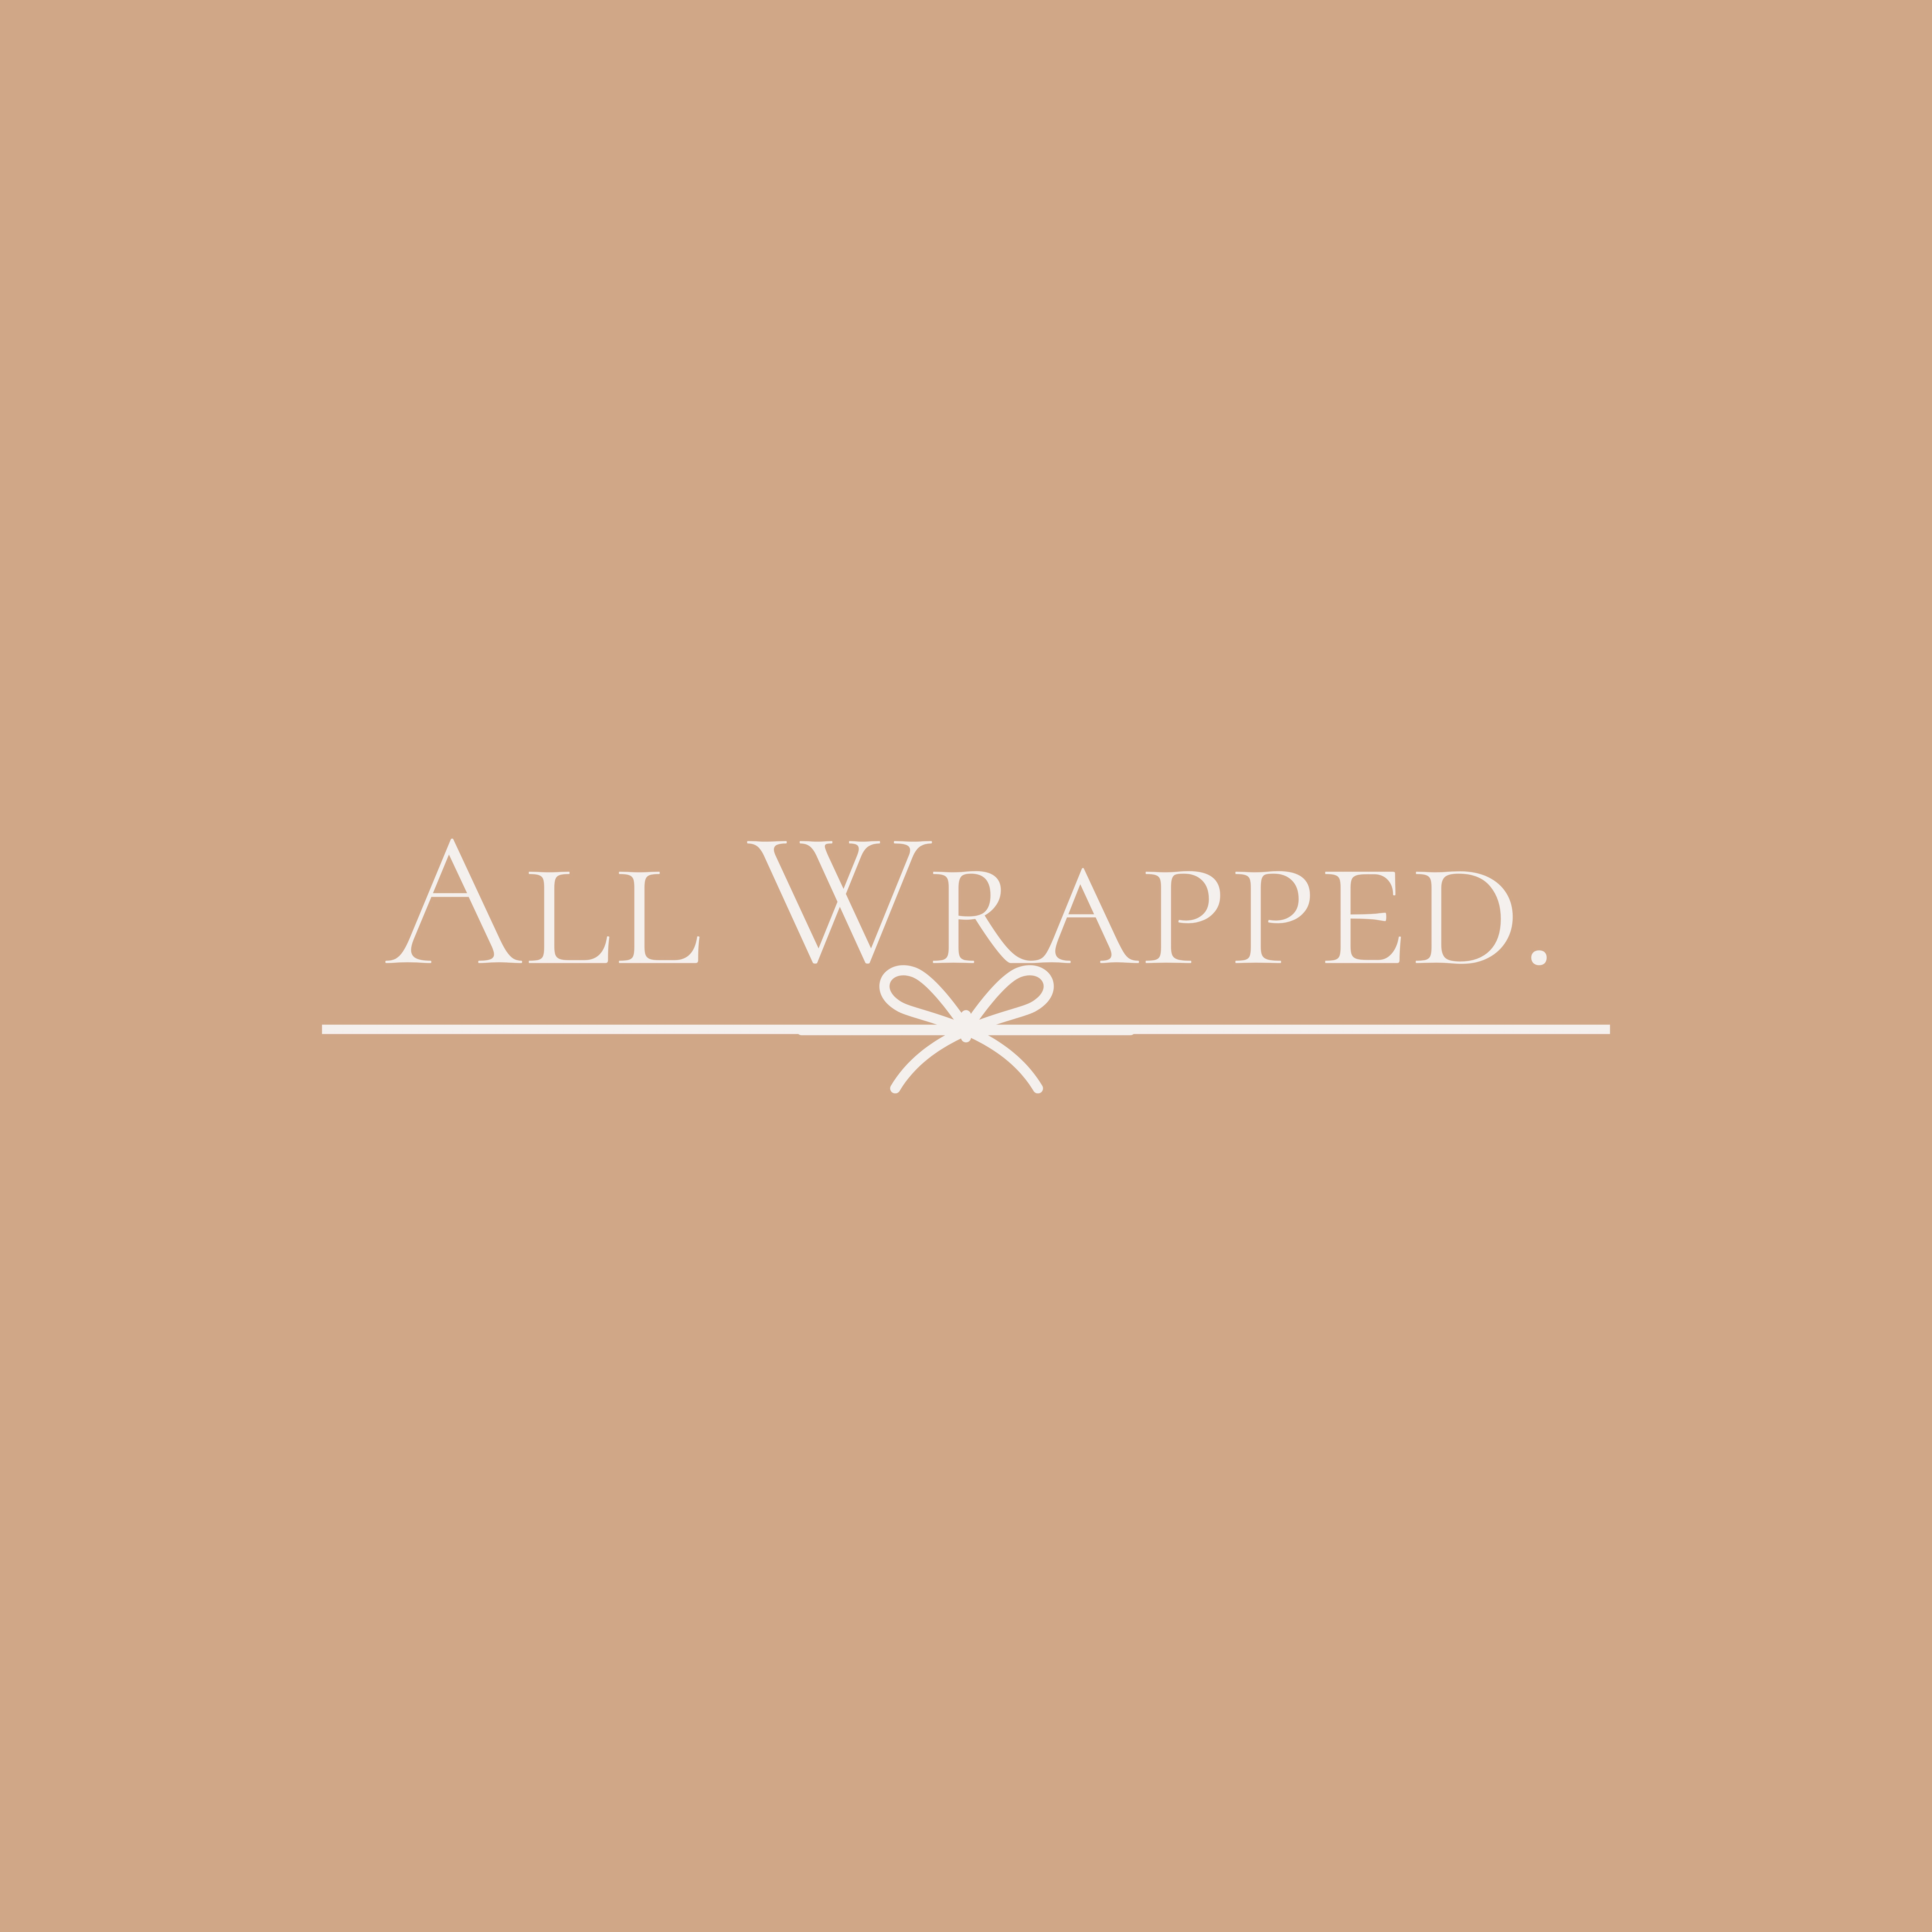 all wrapped